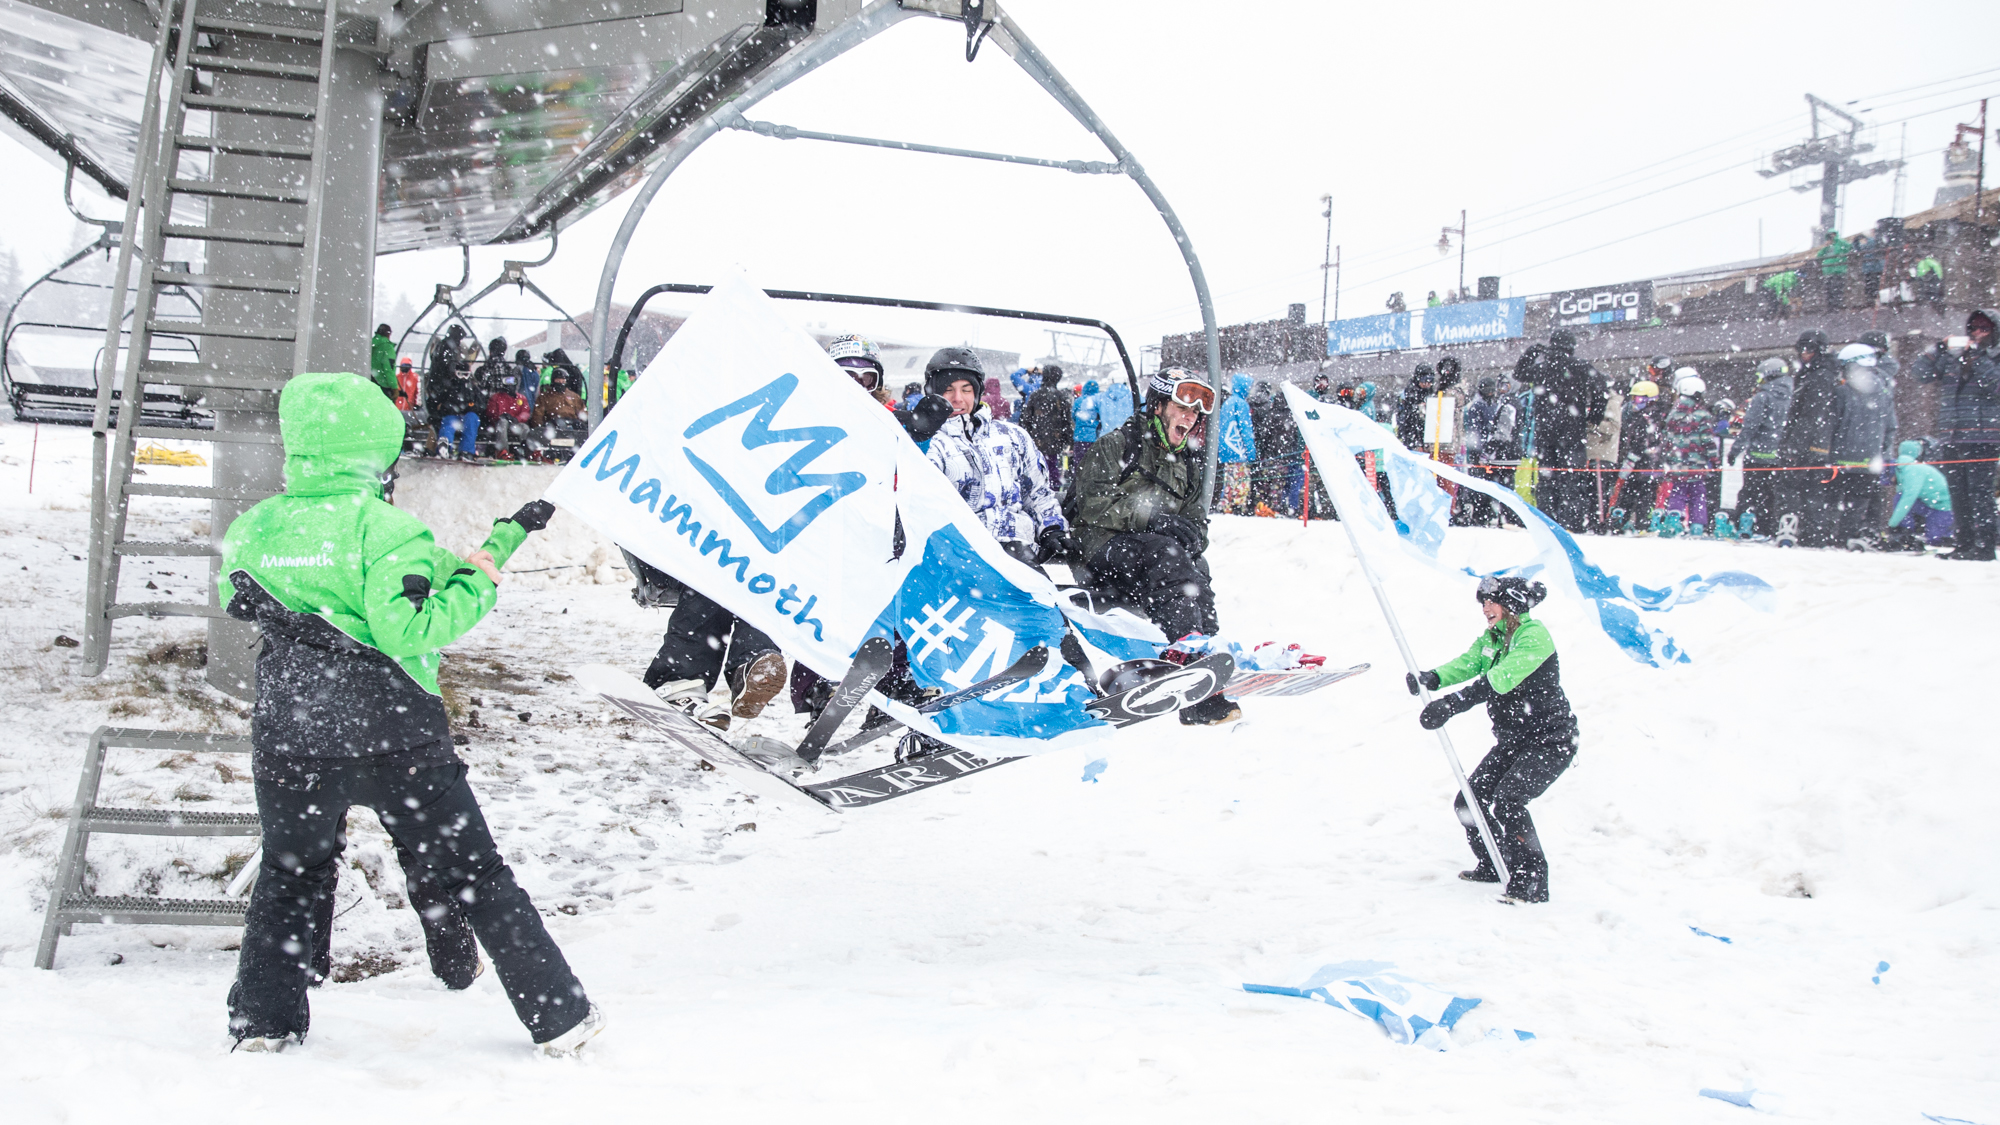 The first first chair at Mammoth Mountain. PHOTO: Courtesy of Mammoth Mountain